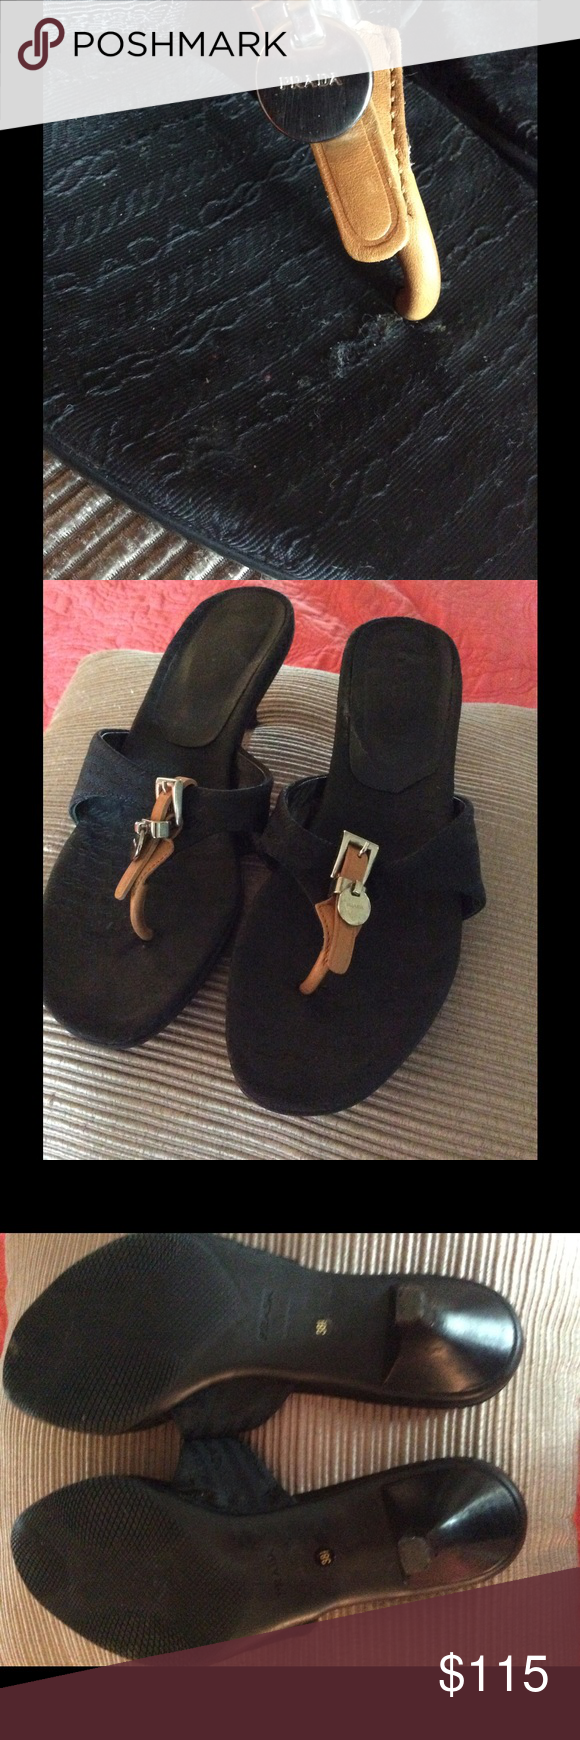 """The kittens are back... PRADA Women's Black Signature Jacquard Sandals Slides Shoes Size 38.5/8-8.5 Beautiful leather trim at thong and that famous Prada name on a silver disc.  Heel 2.5"""".  Excellent pre-owned condition.  No box or dustbag. Prada Shoes Sandals"""